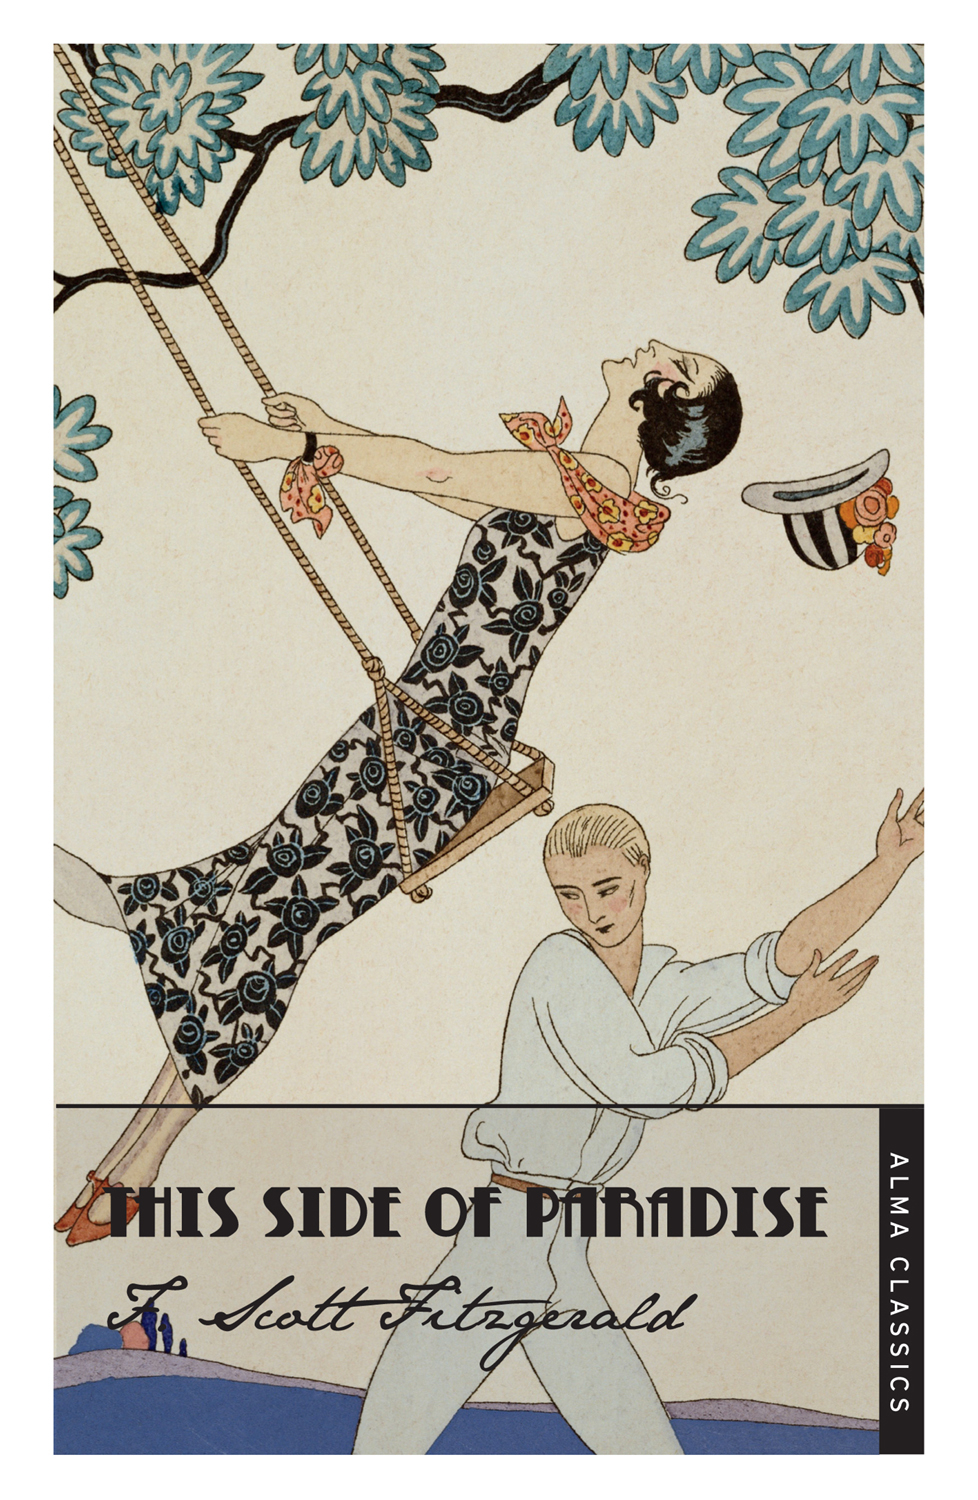 a literary analysis of the side of paradise by f scott fitzgerald Biographycom presents f scott fitzgerald, author of 'the great gatsby,' who   more than modest commercial or critical success during his lifetime  at the age  of 24, the success of his first novel, this side of paradise, made.